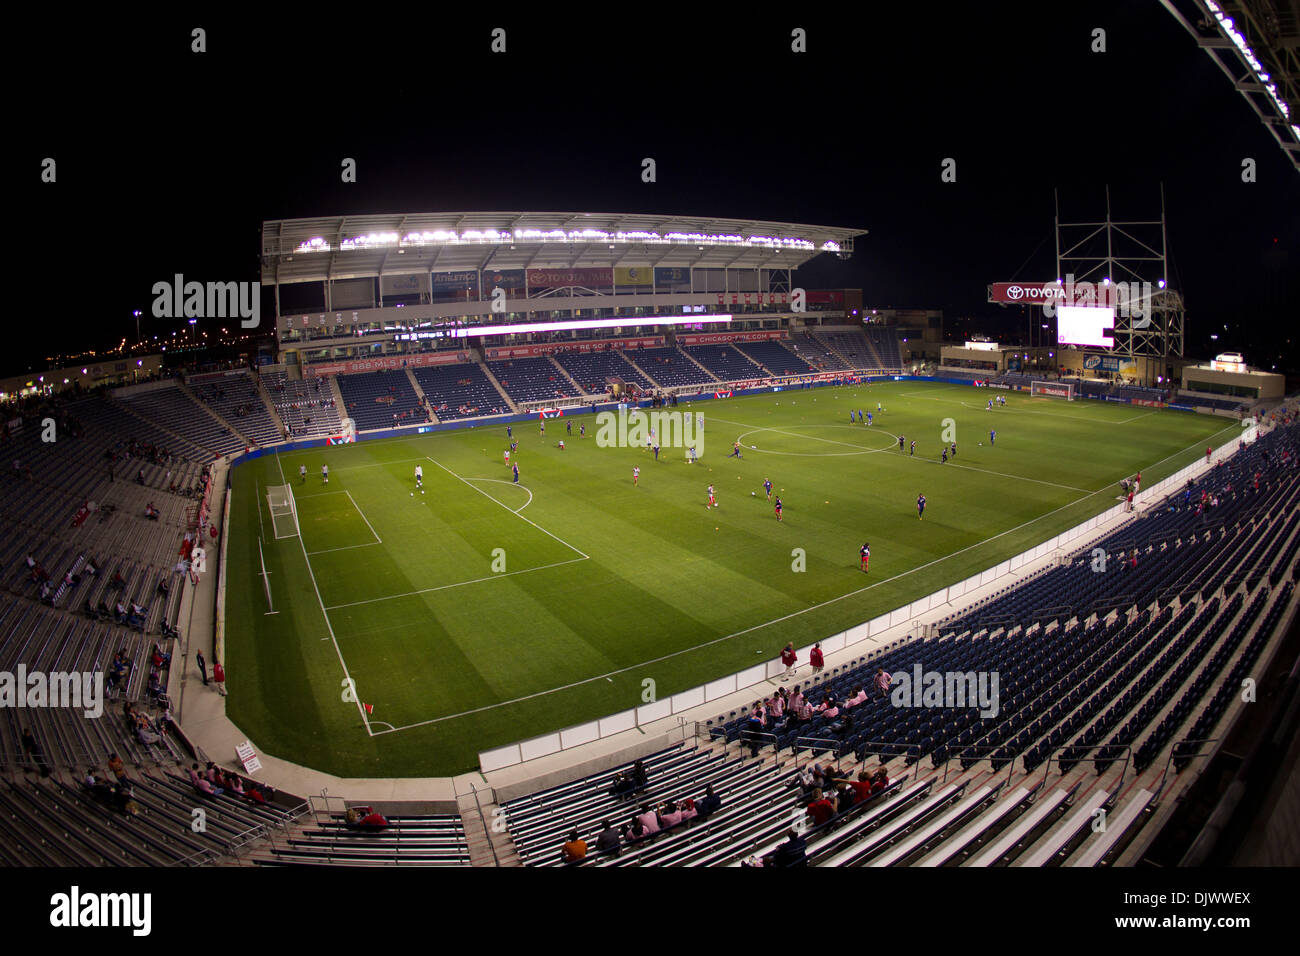 Oct. 12, 2010   Bridgeview, Illinois, United States Of America   Toyota Park  Before The Start Of The MLS Game Between The Chicago Fire And The Kansas  City ...